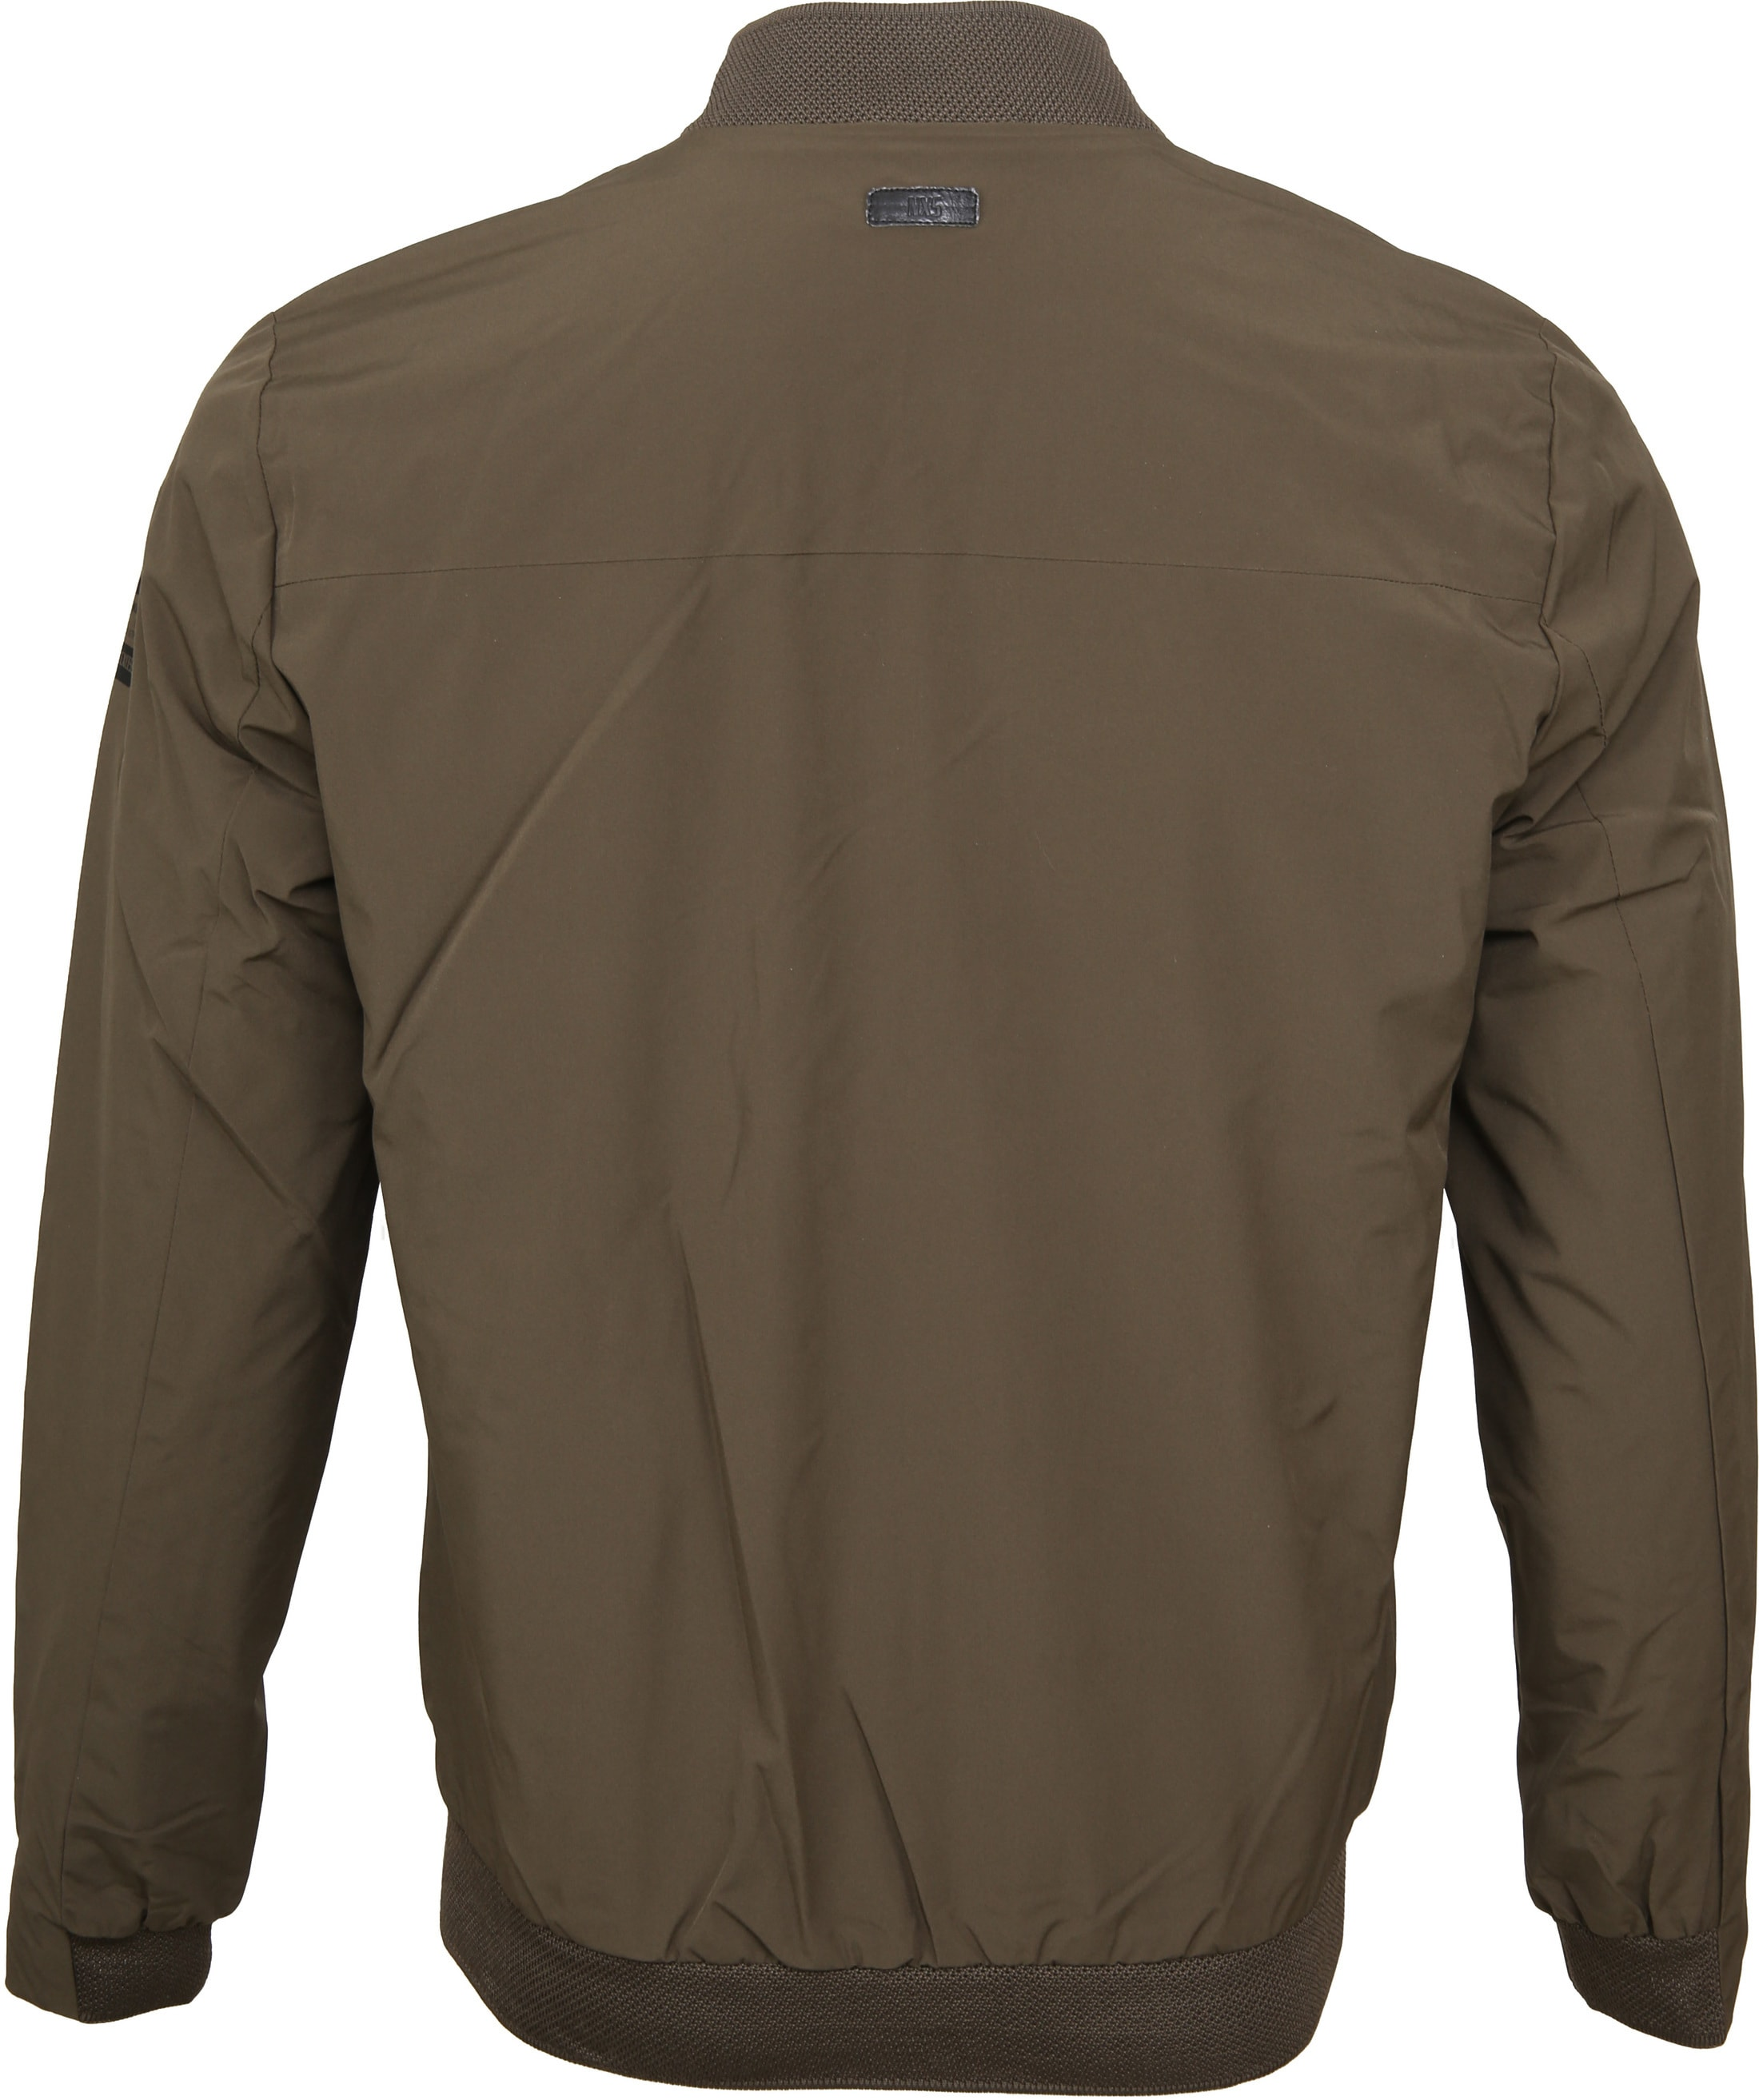 No-Excess Bomber Jacket Army Green foto 4